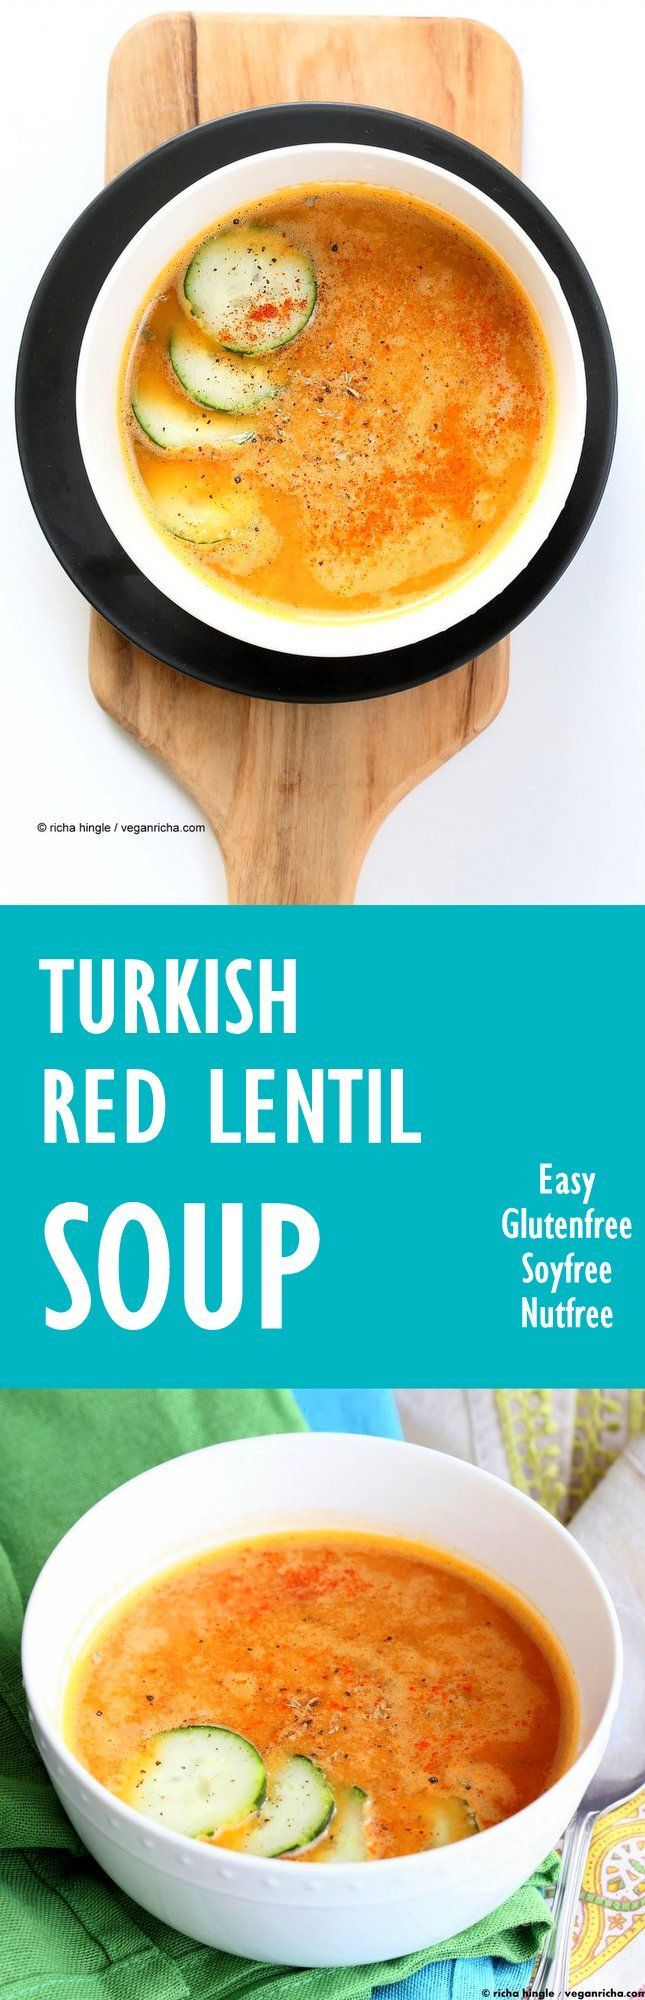 Easy Turkish Red Lentil Soup with carrots, turkish spices, red lentils.Easy weeknight meal. Few ingredients. Vegan Gluten-free Soyfree Recipe | VeganRicha.com